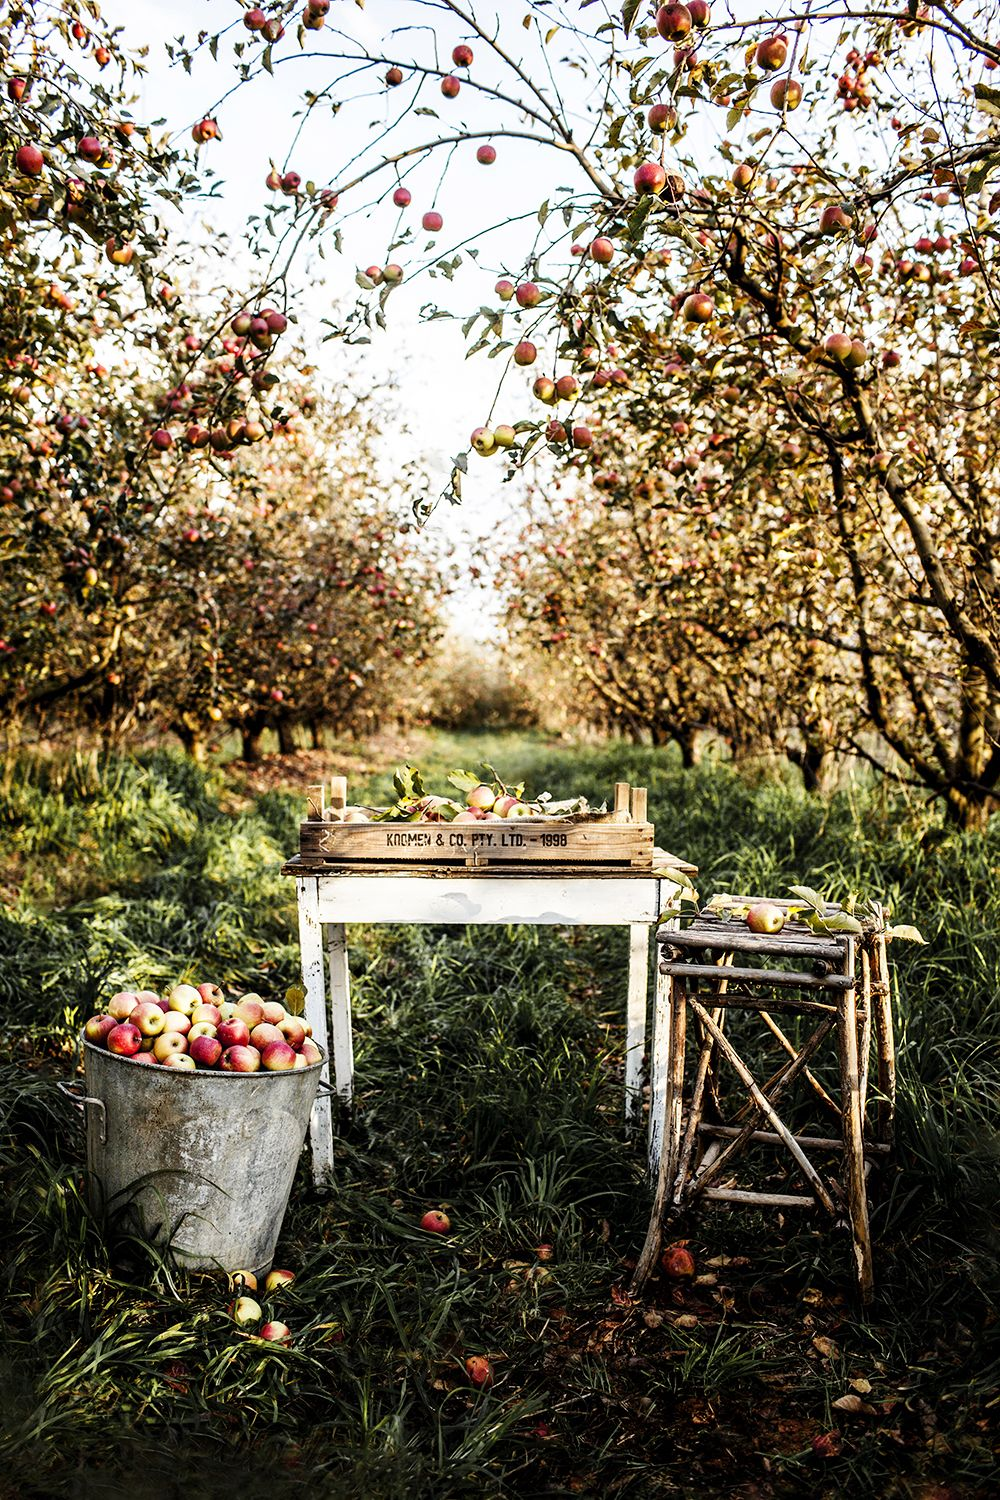 Ahhhh, love Autumn and the thought of picking apples to